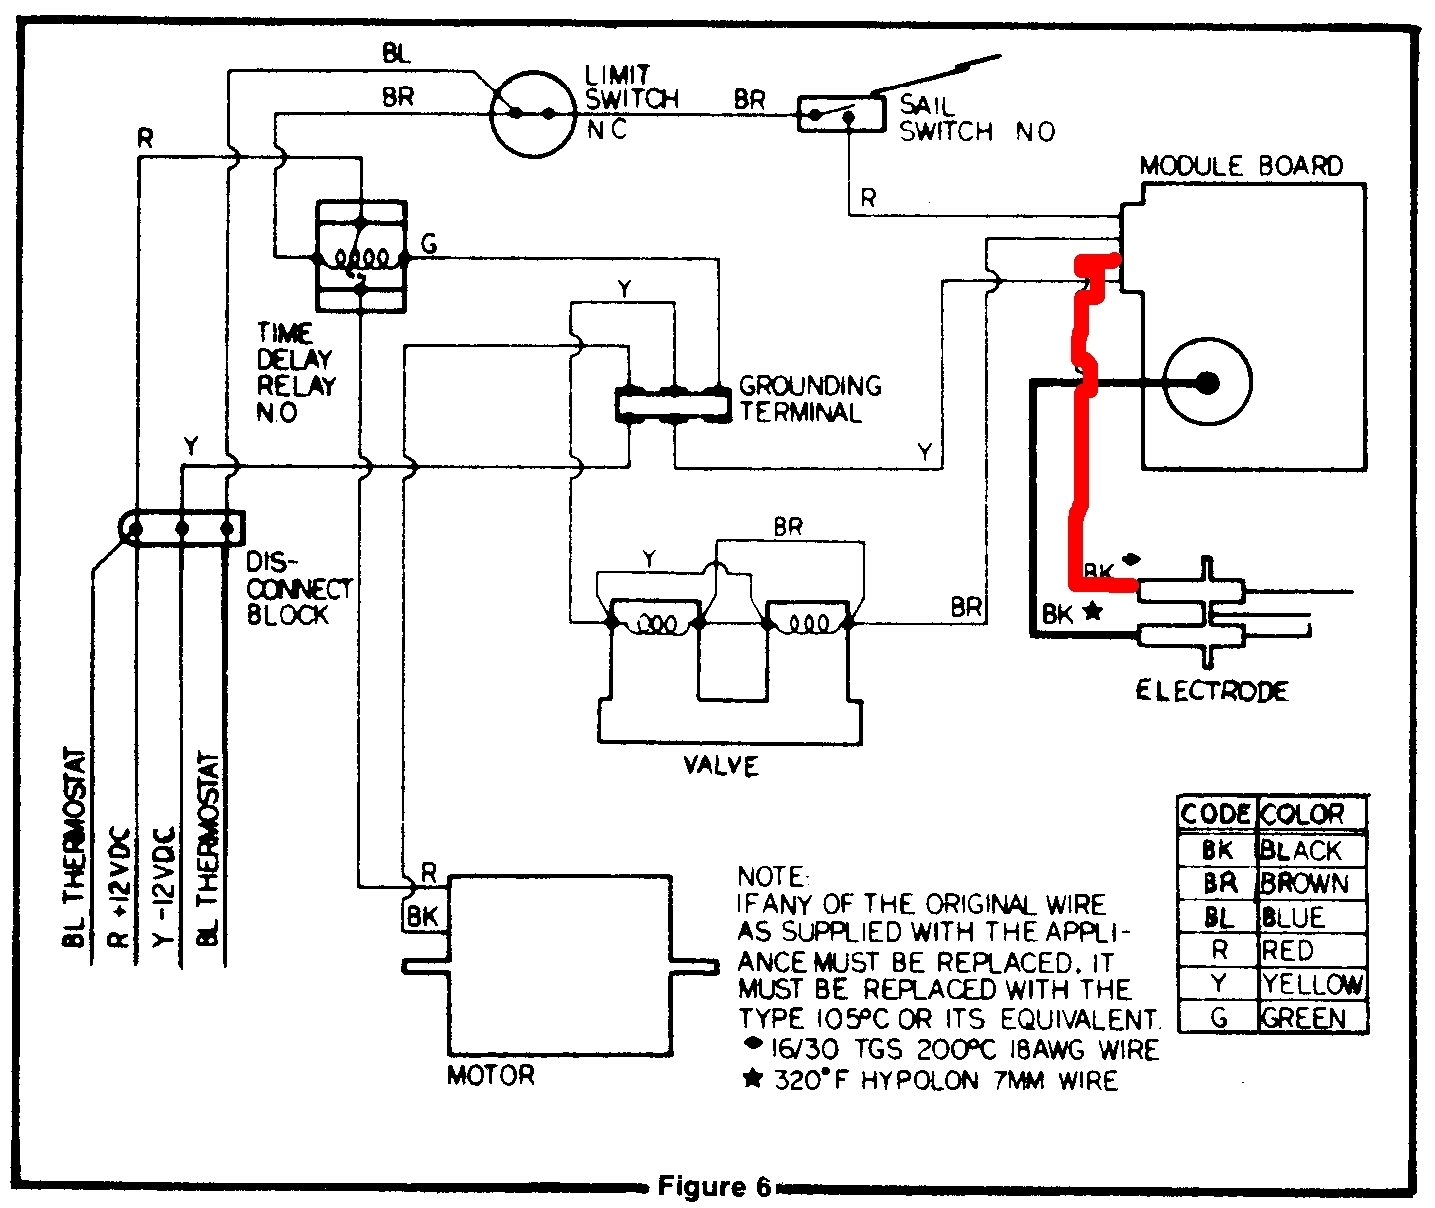 wiring diagram for keystone cougar